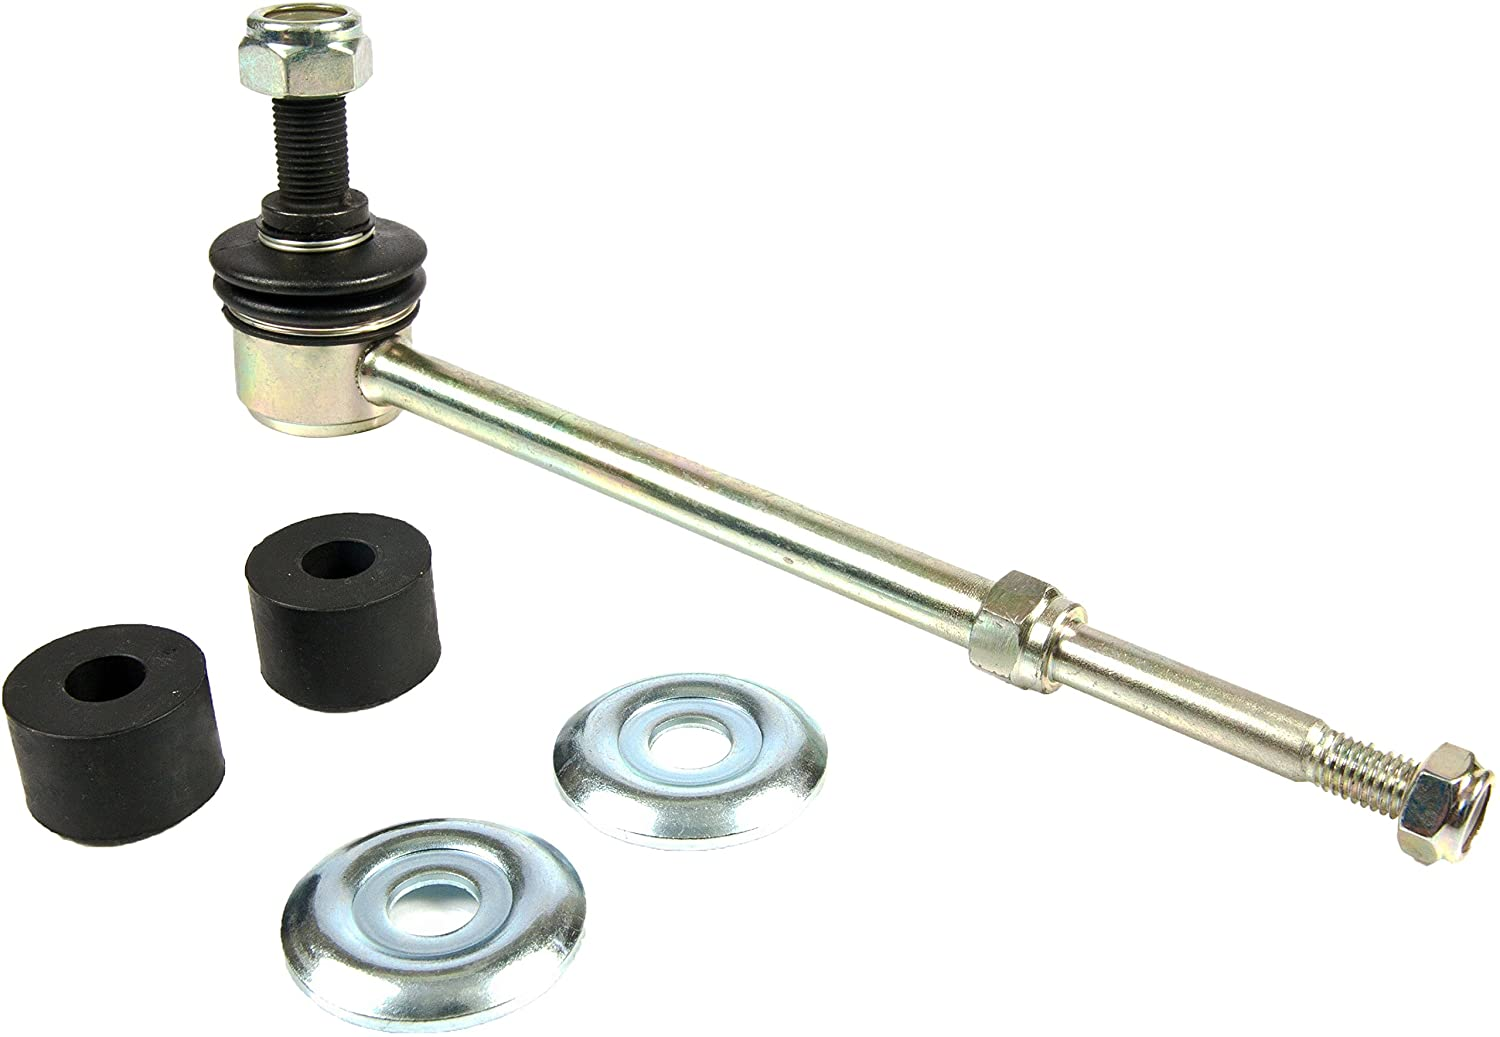 Proforged 113-10144 Rear Sway Bar End Link